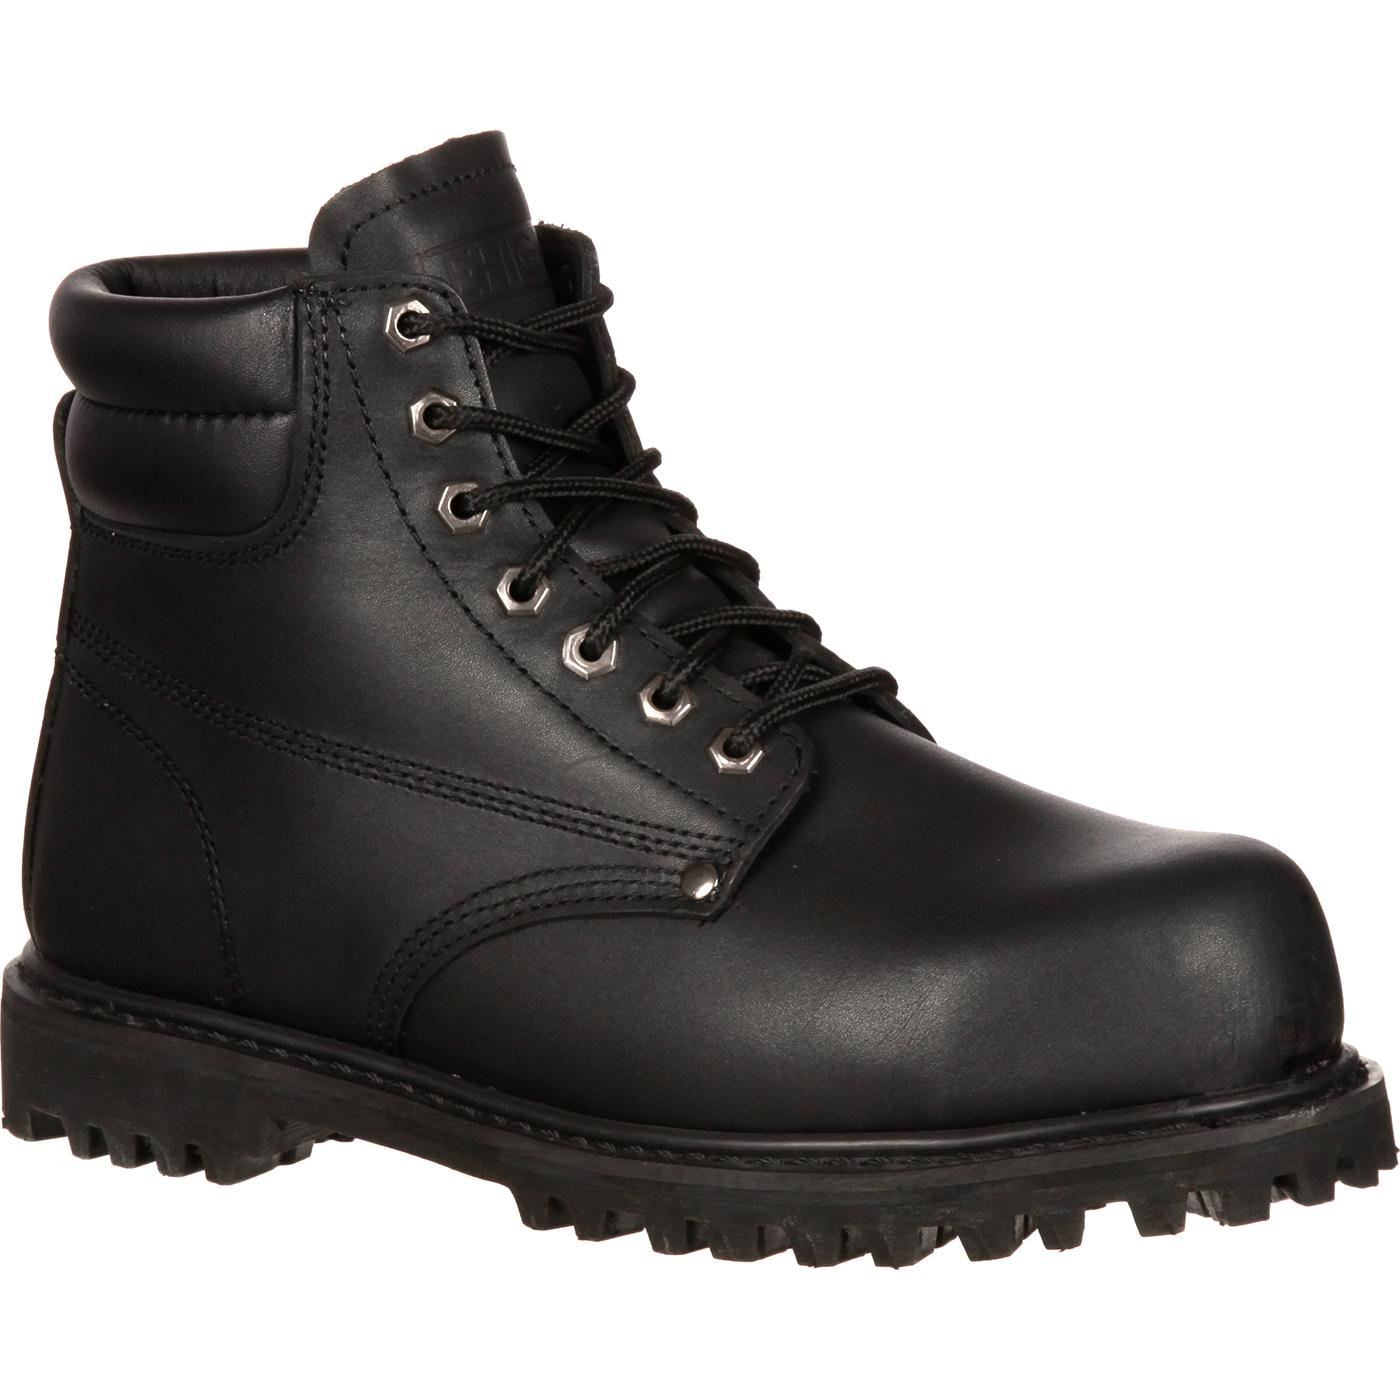 E Wide Safety Shoes